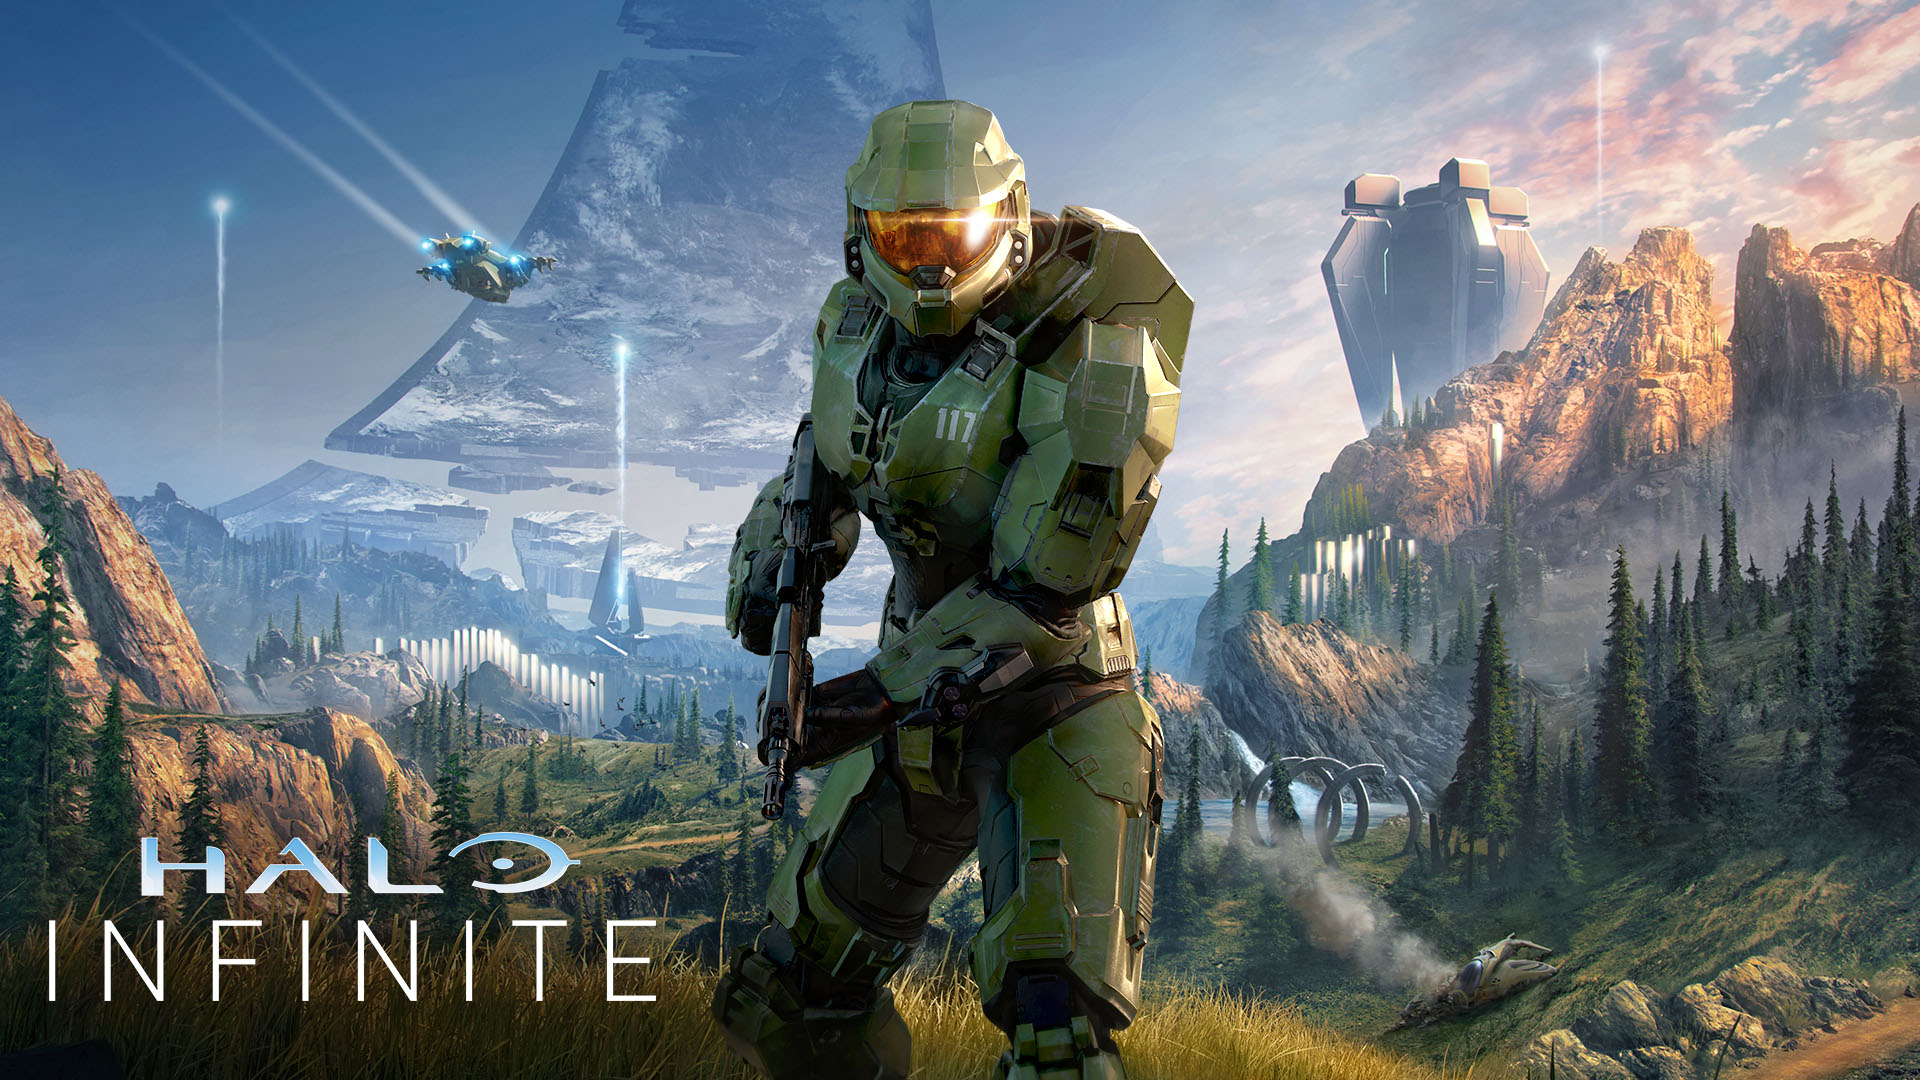 Halo Infinite Will Not Be At The Video Game Awards